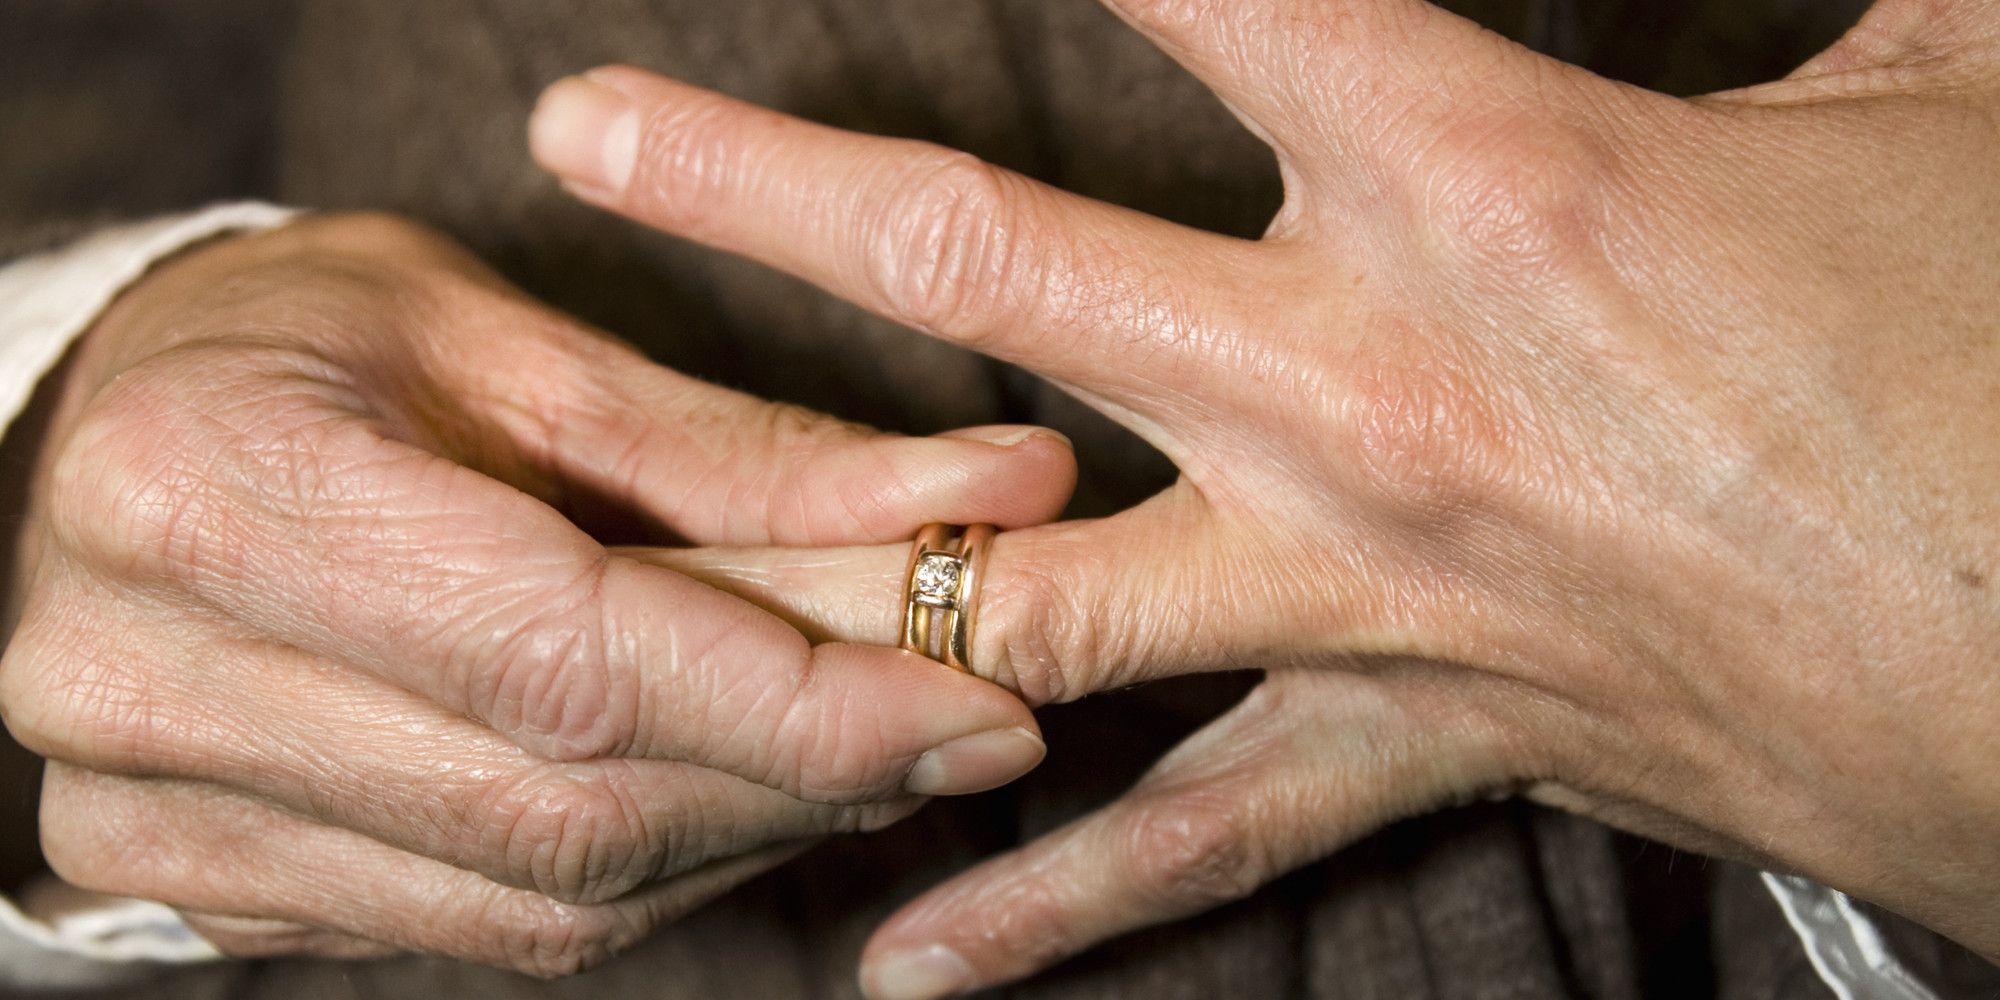 revealed: why people remove their wedding rings | huffpost uk